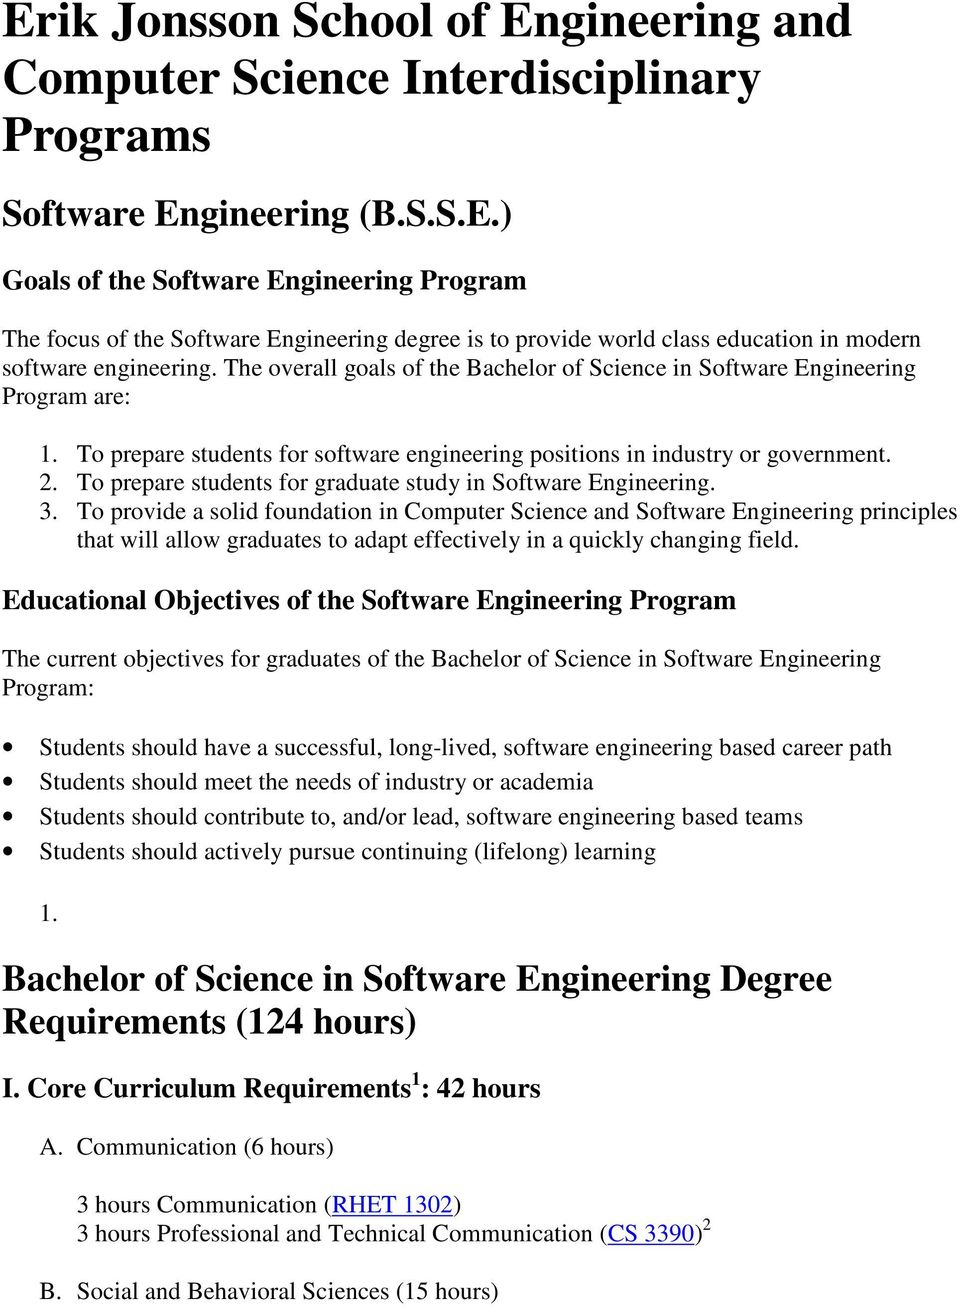 To prepare students for graduate study in Software Engineering. 3.